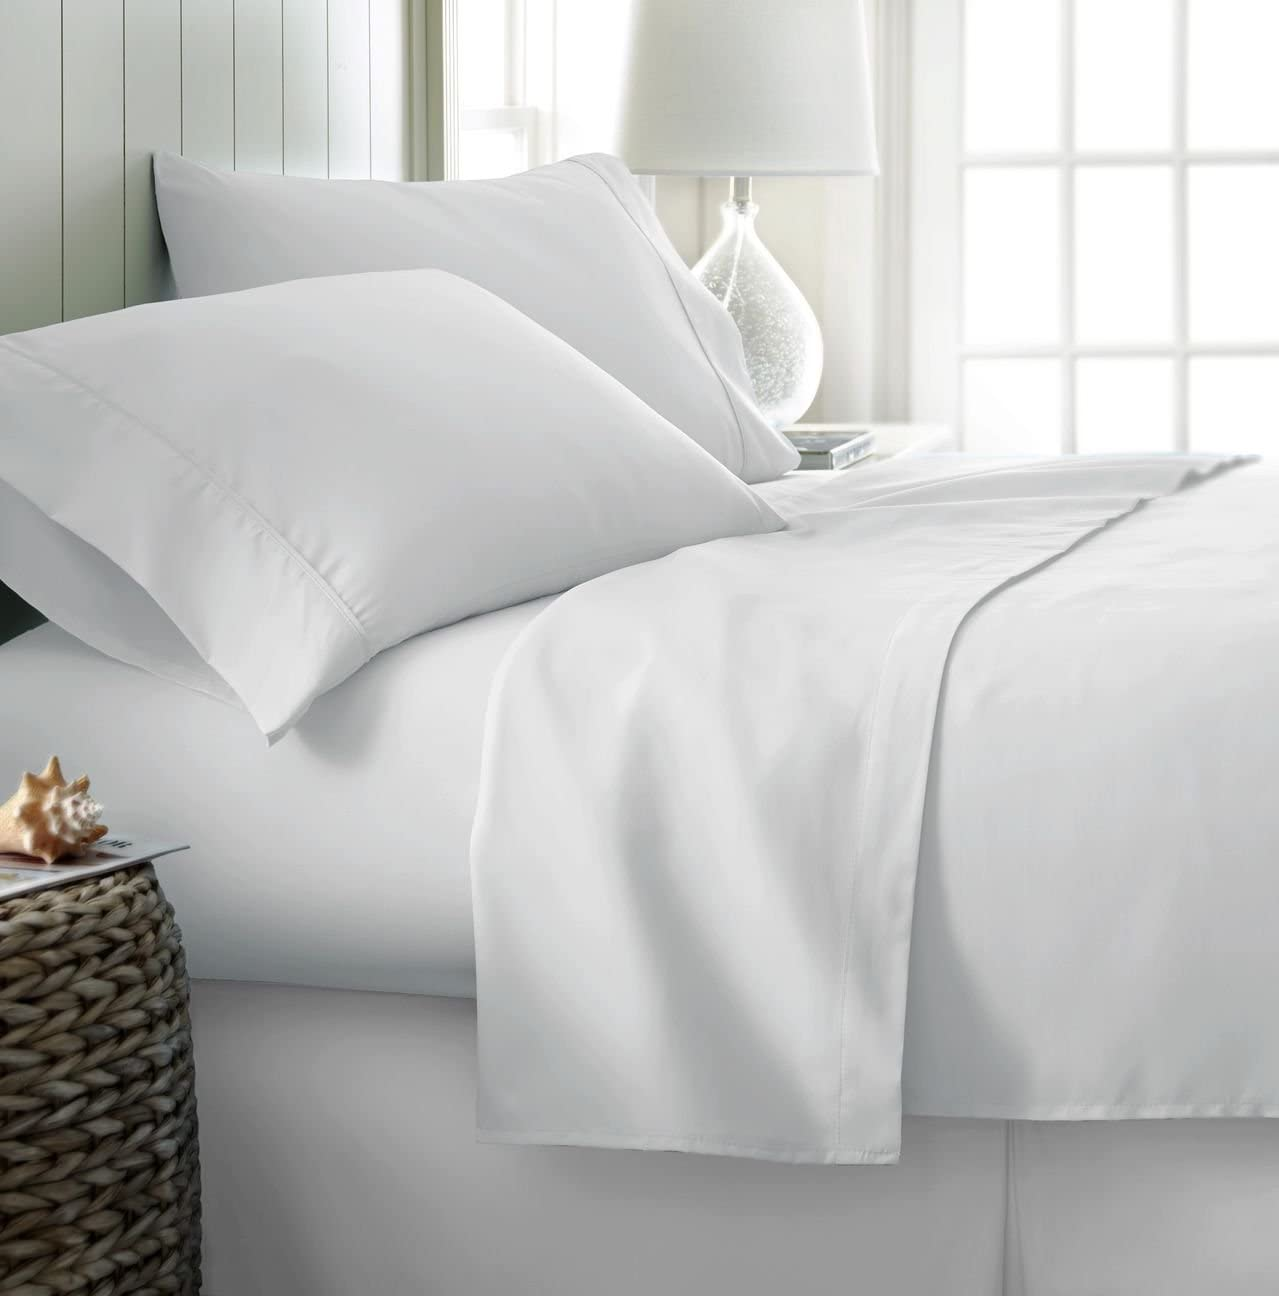 Simply Soft Ultra Soft 4 Piece Bed Sheet Set, King, White